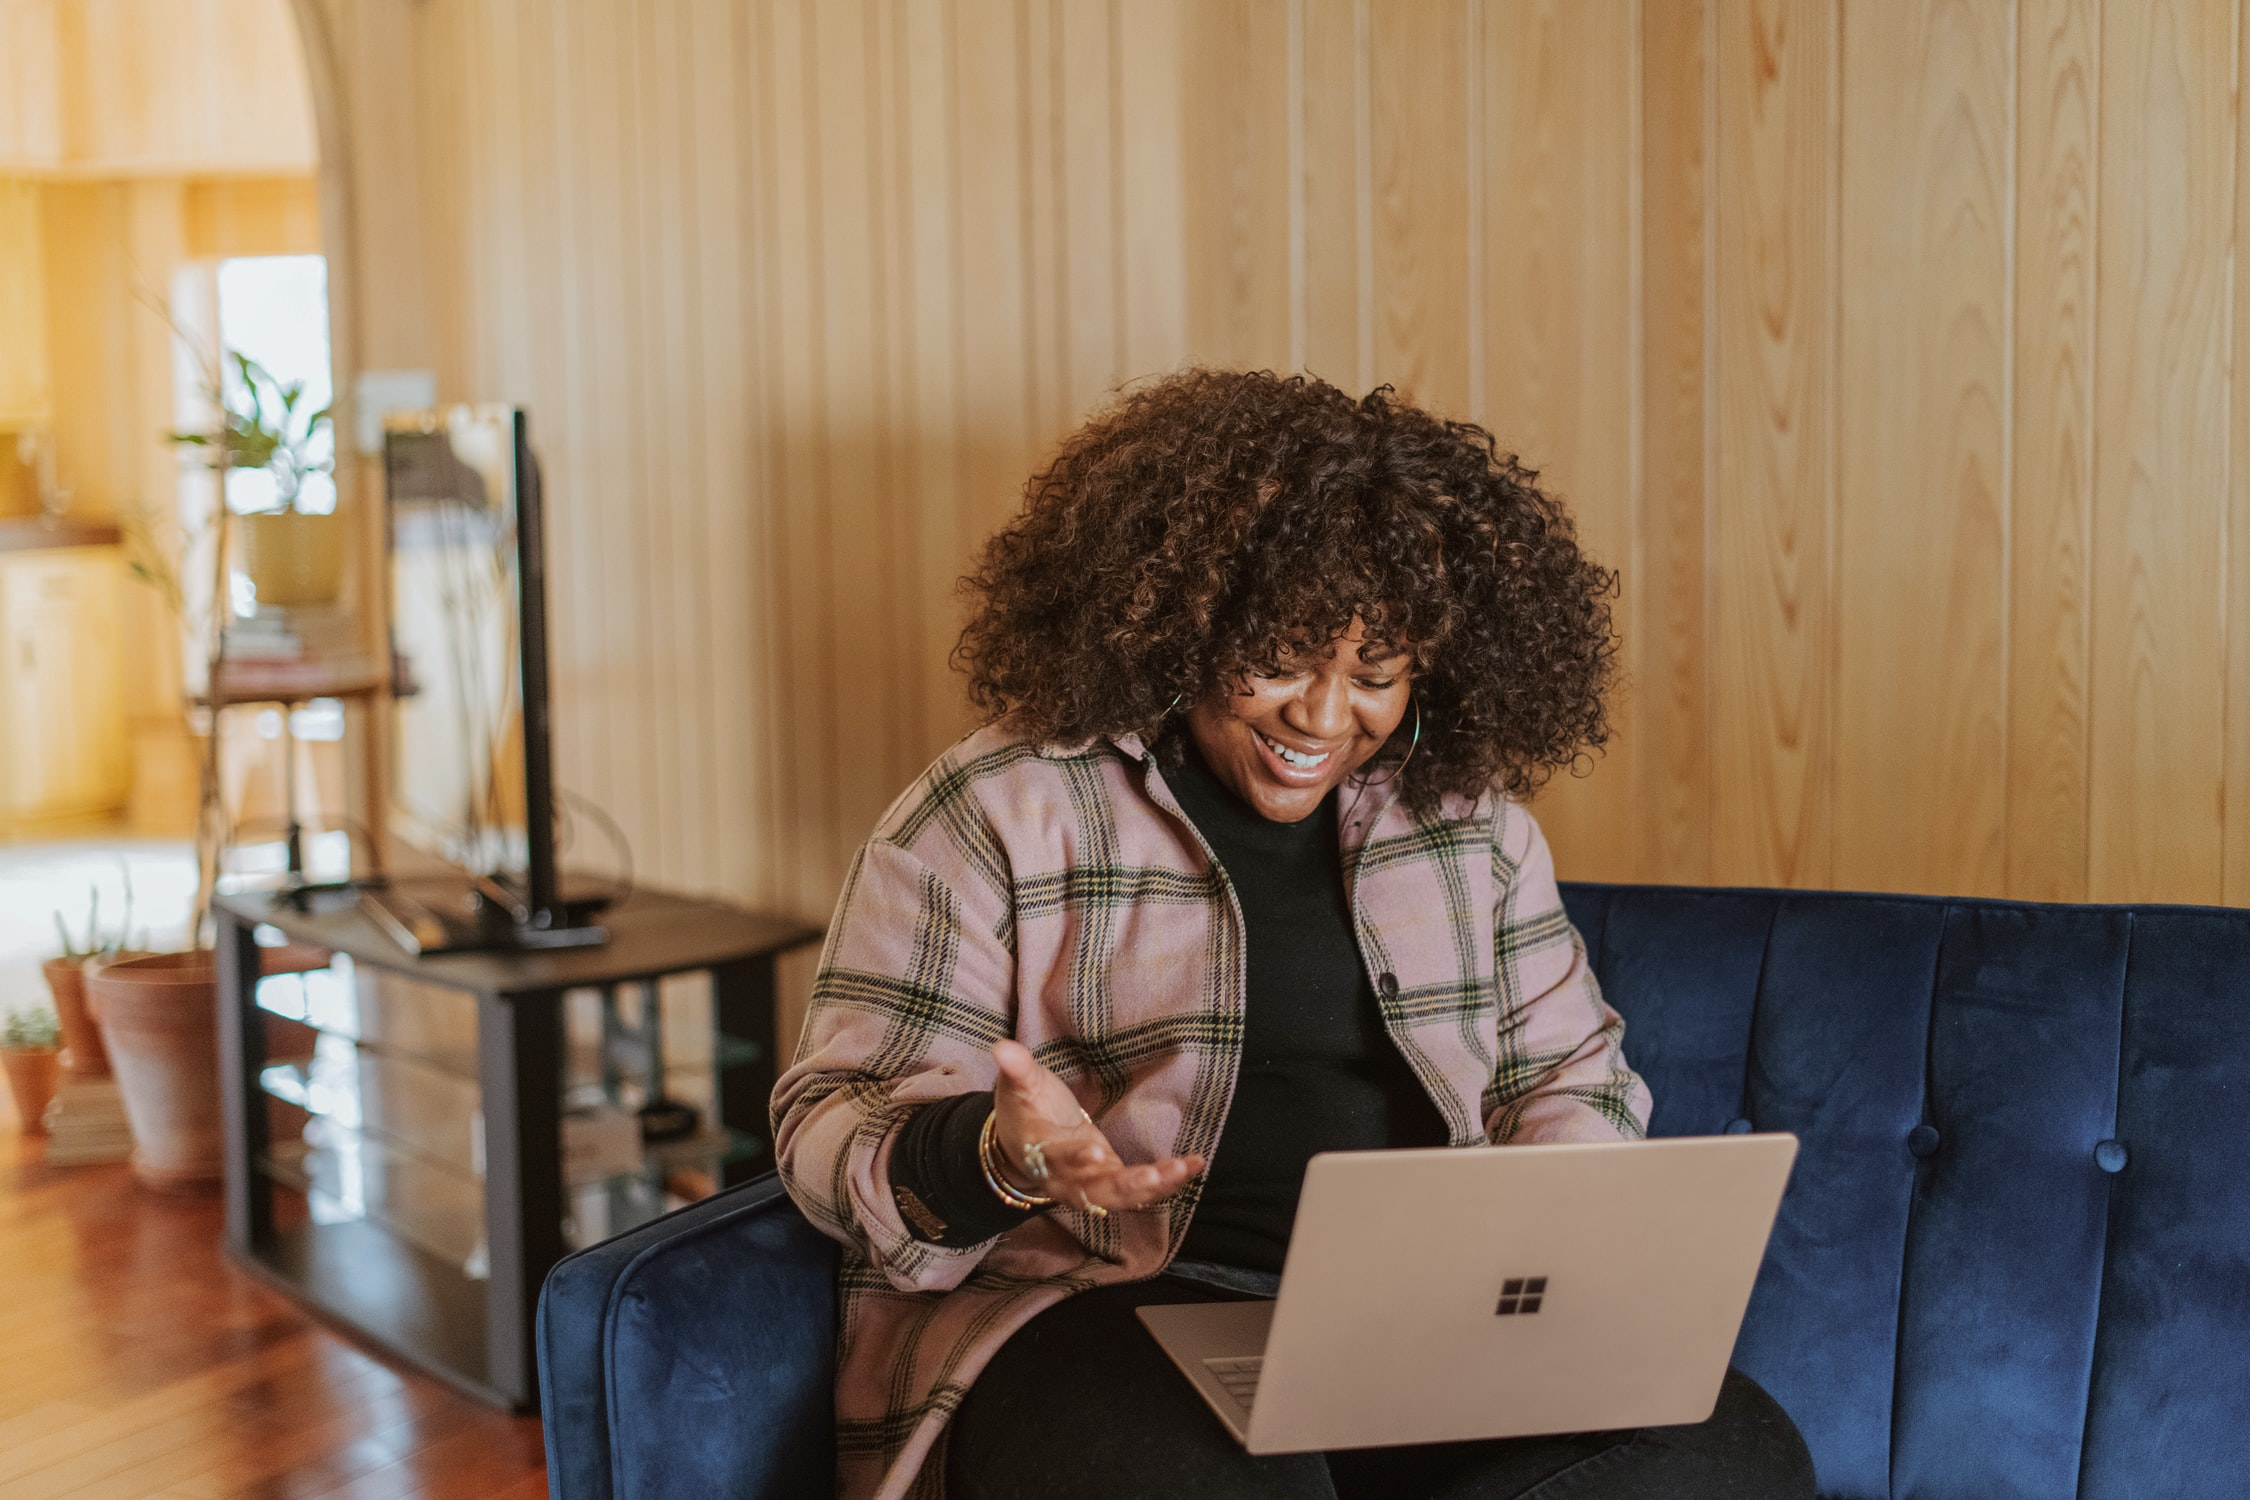 Woman working remote sitting on her couch on a call